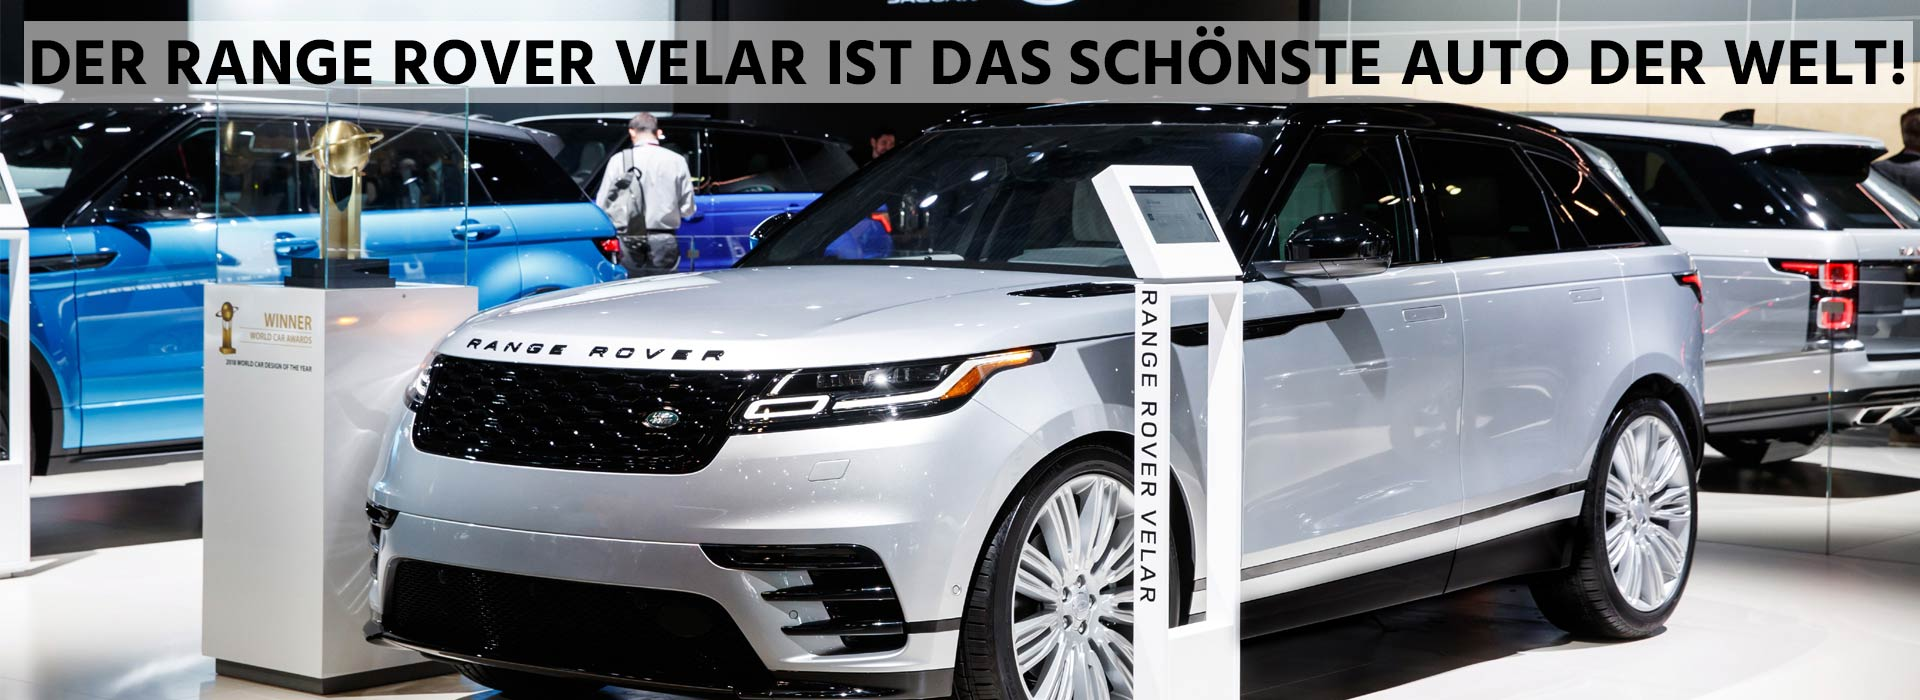 Range Rover Velar World Car Award 2018